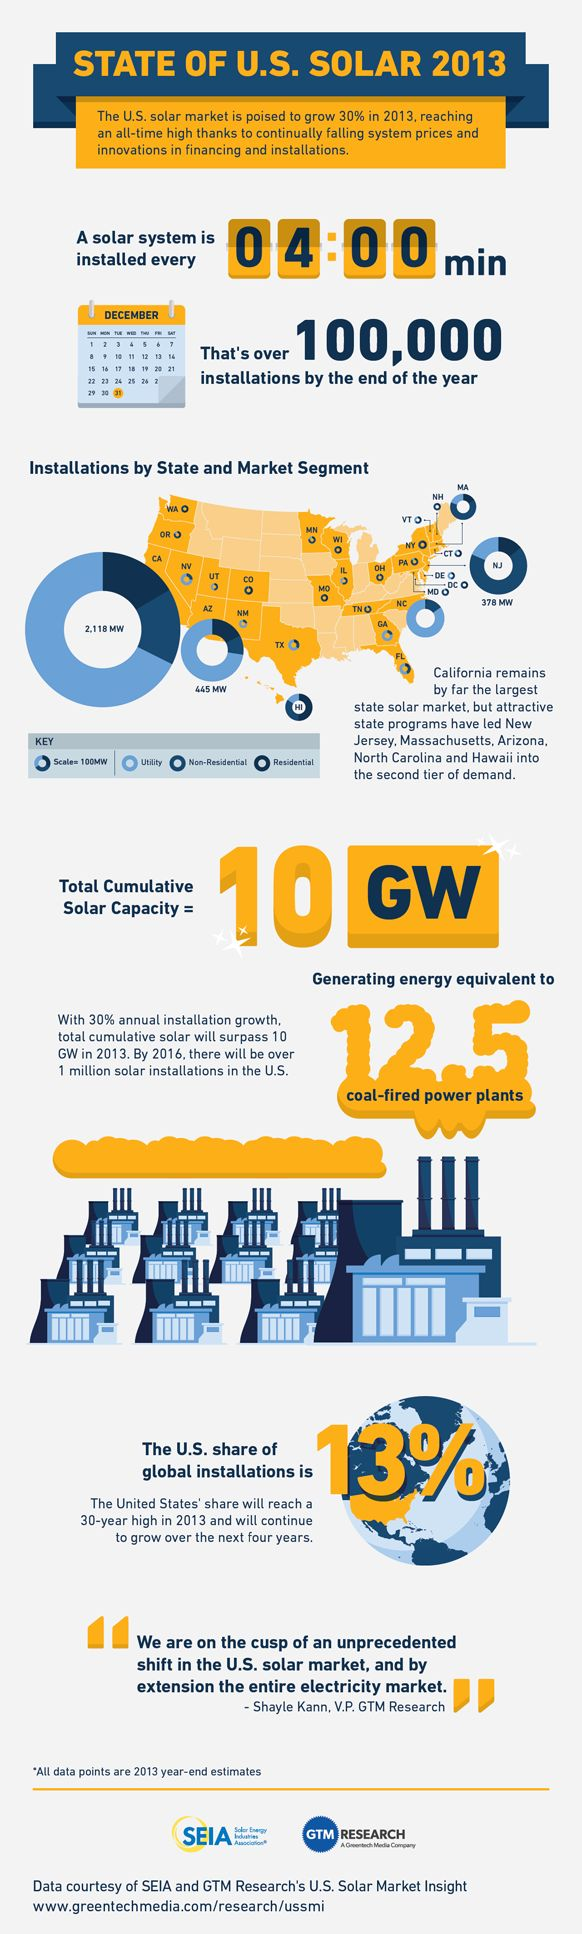 How Much Solar Energy Is Used In The US - 2013